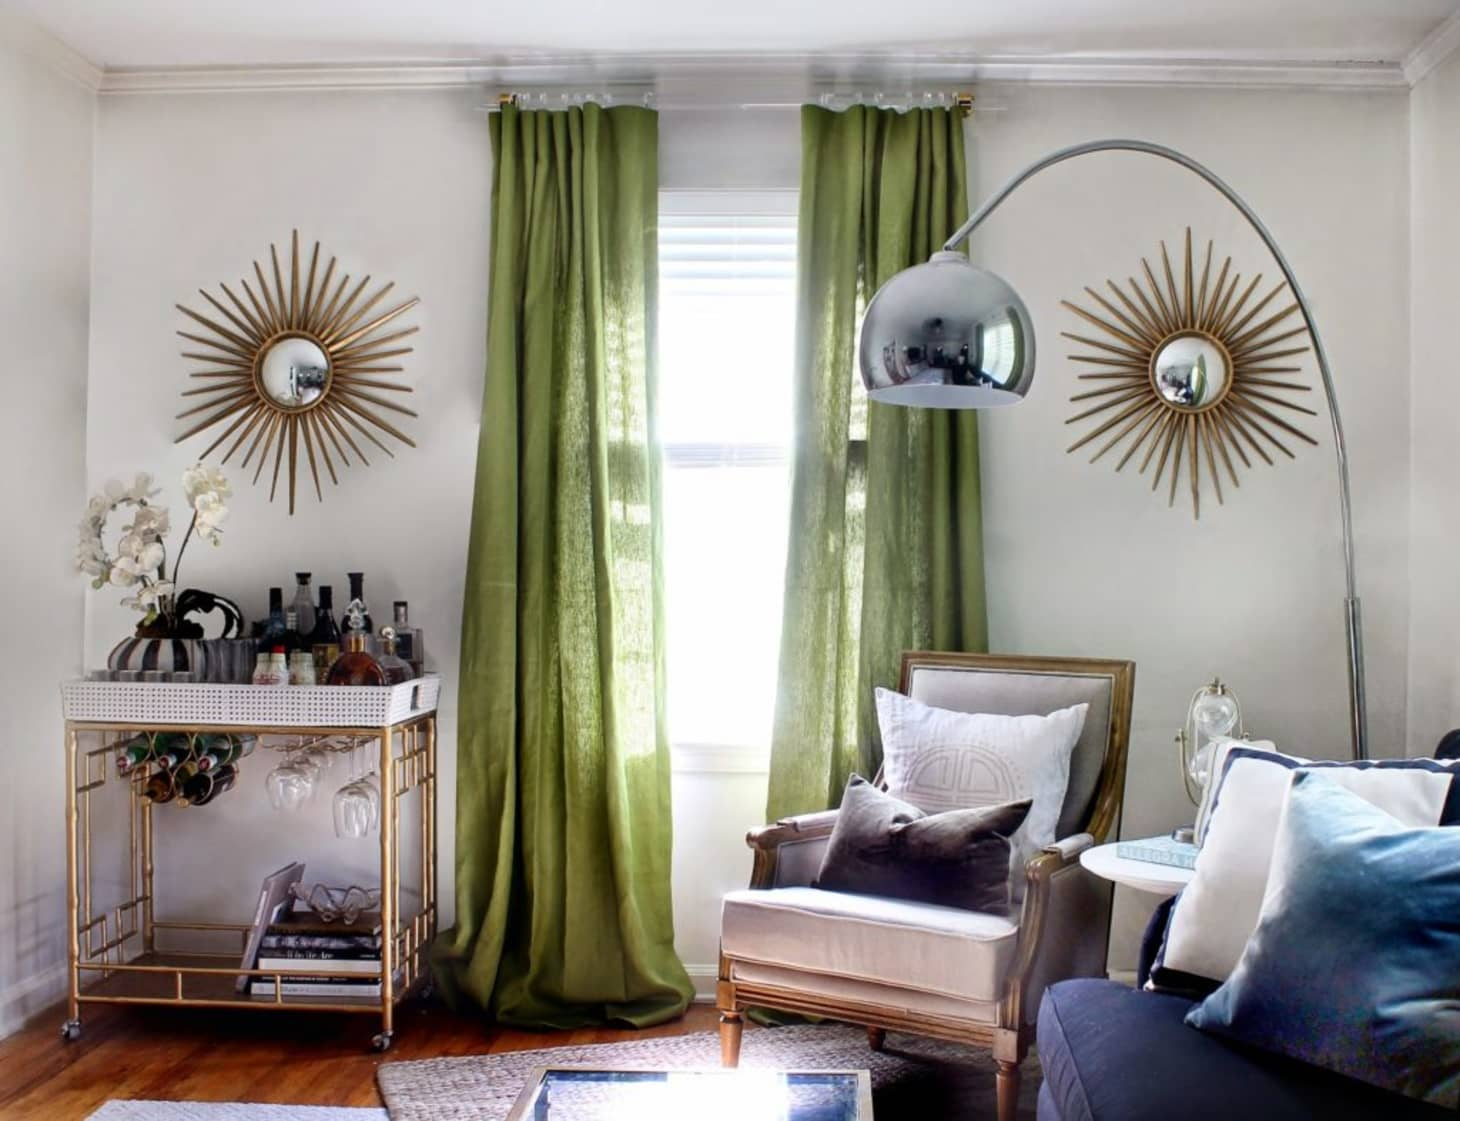 Power Up Your Design With Acrylic Or Lucite Curtain Rods